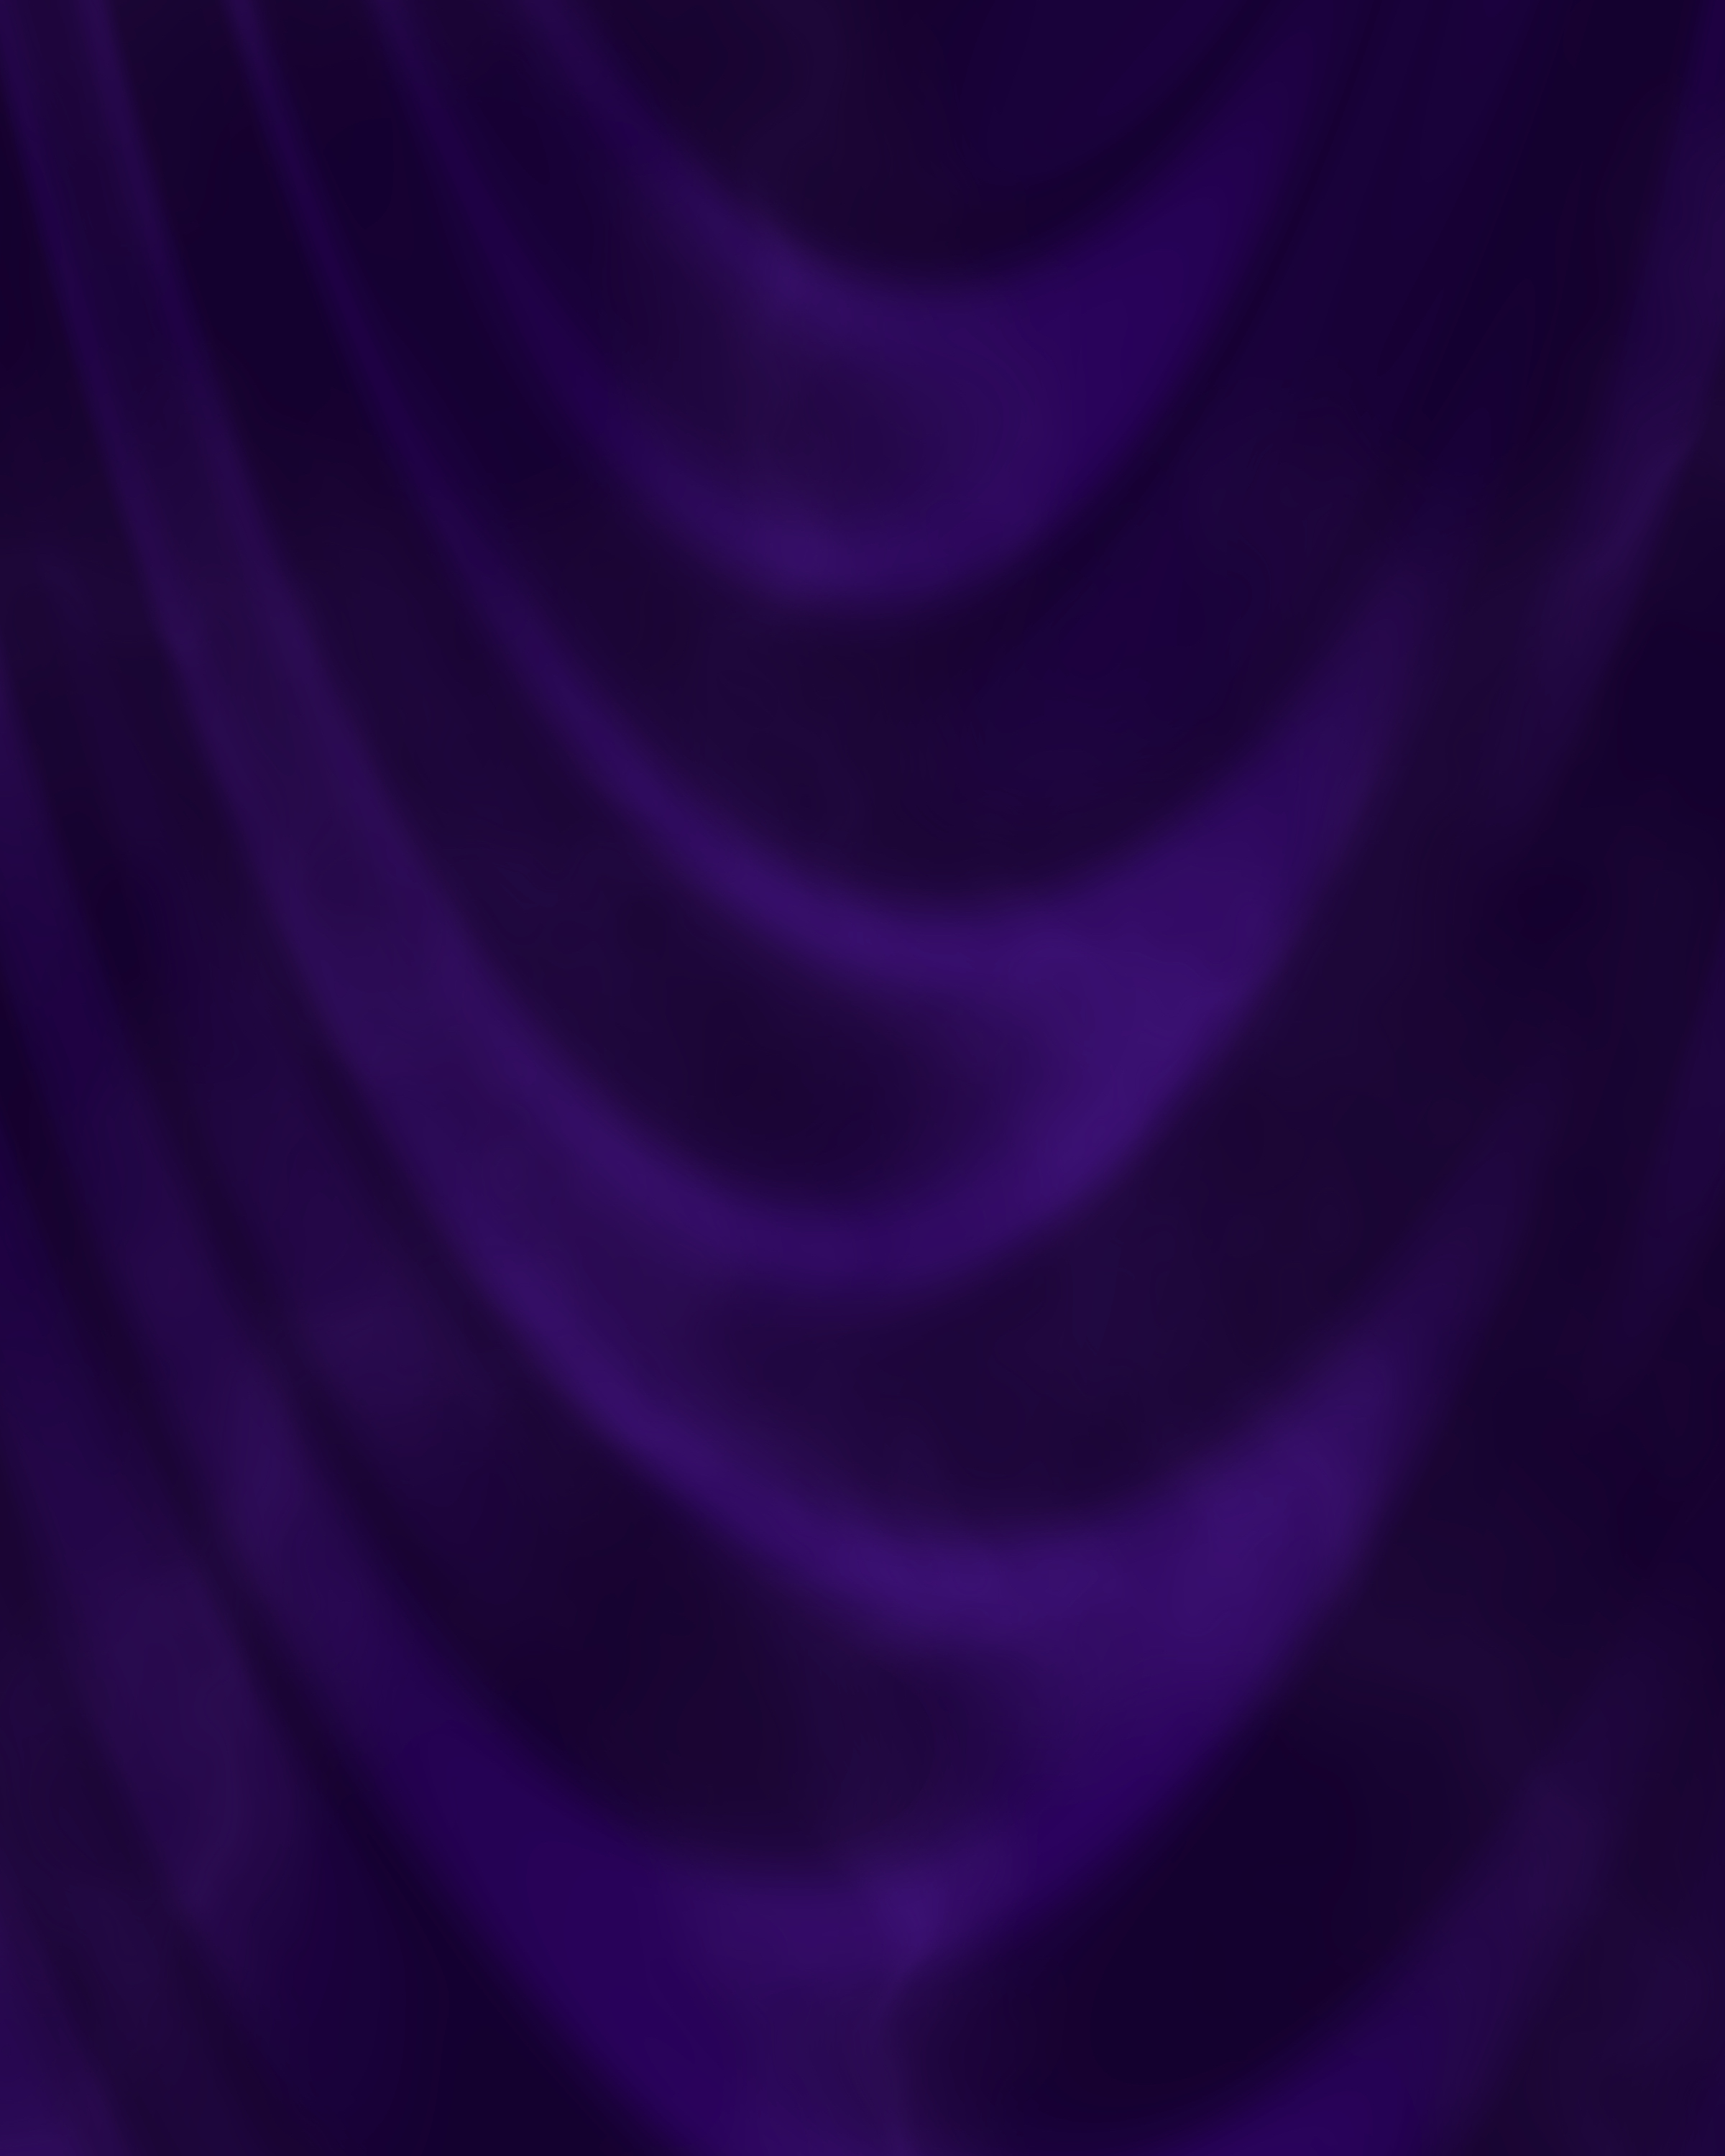 purple velvet wallpaper wallpapersafari